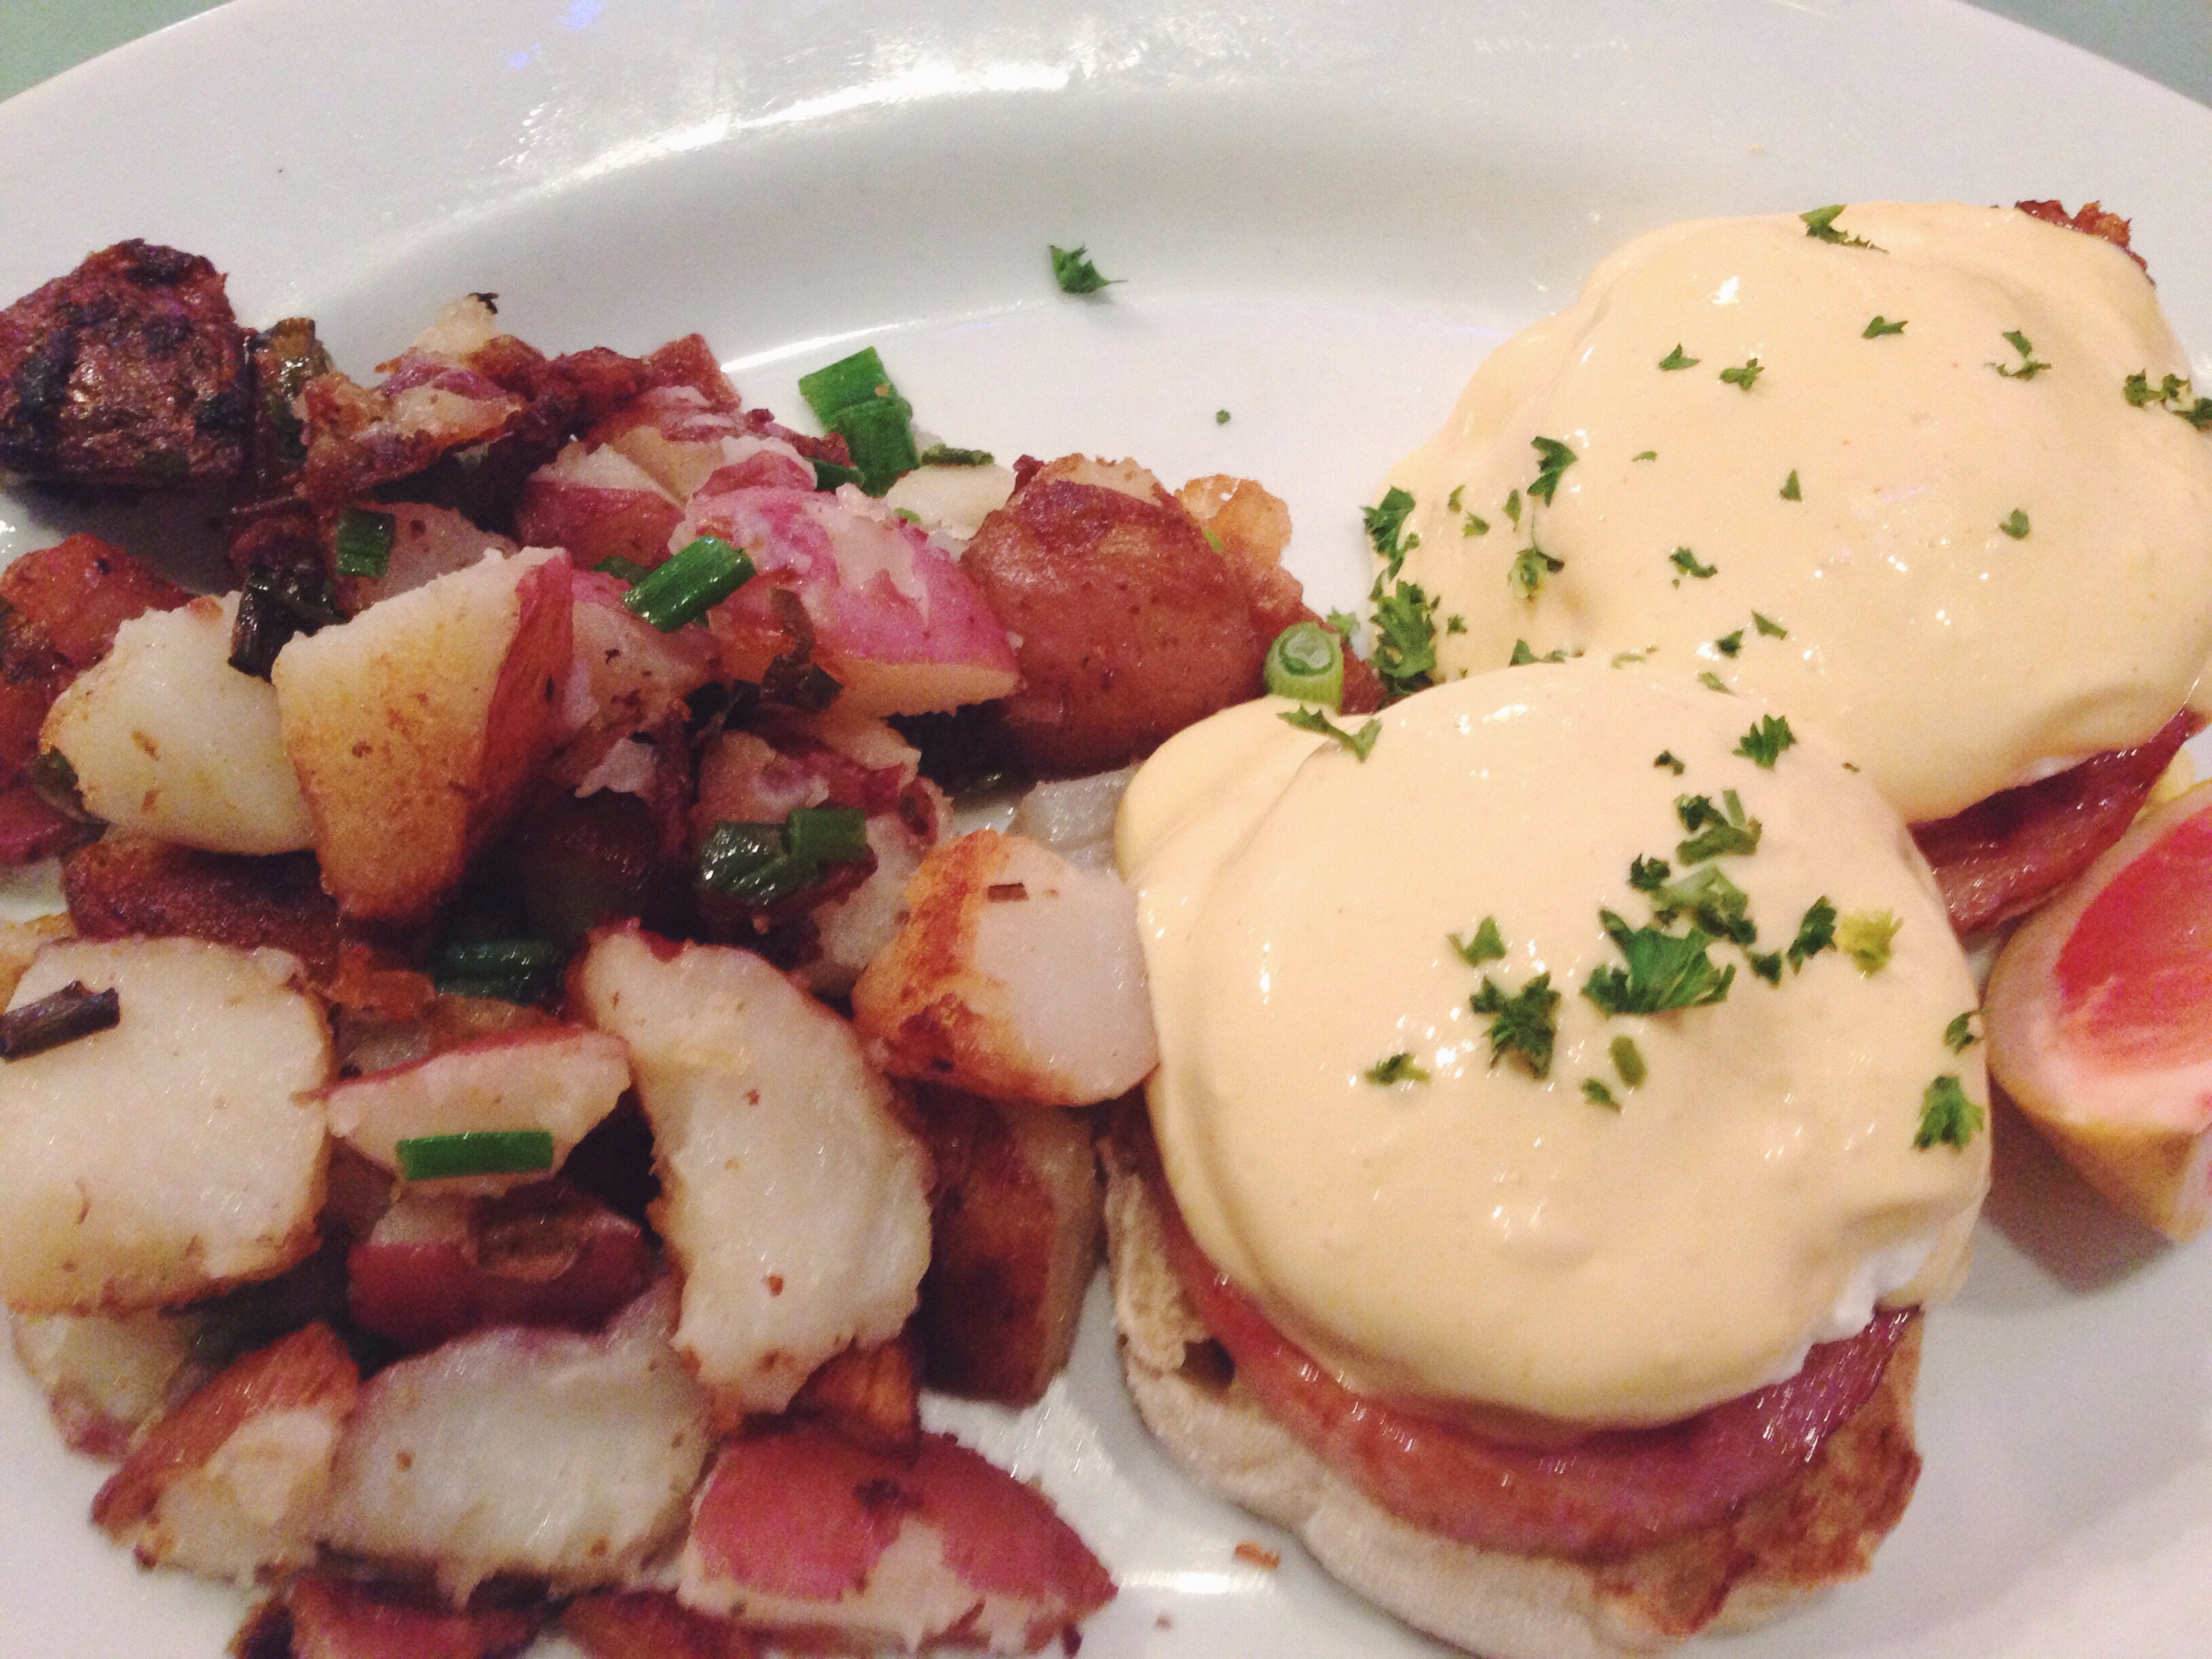 Eggs Benedict at Mo's grill